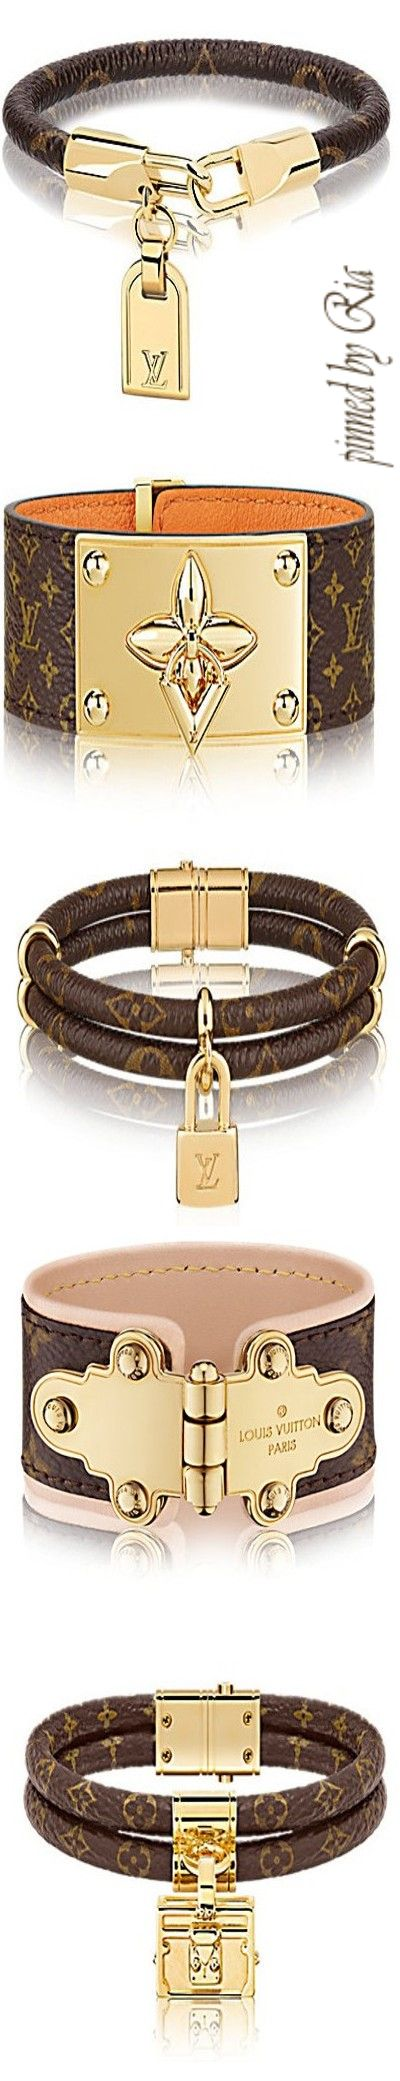 Louis Vuitton Flowering and Iconic Monogram Leather Bracelets l Ria